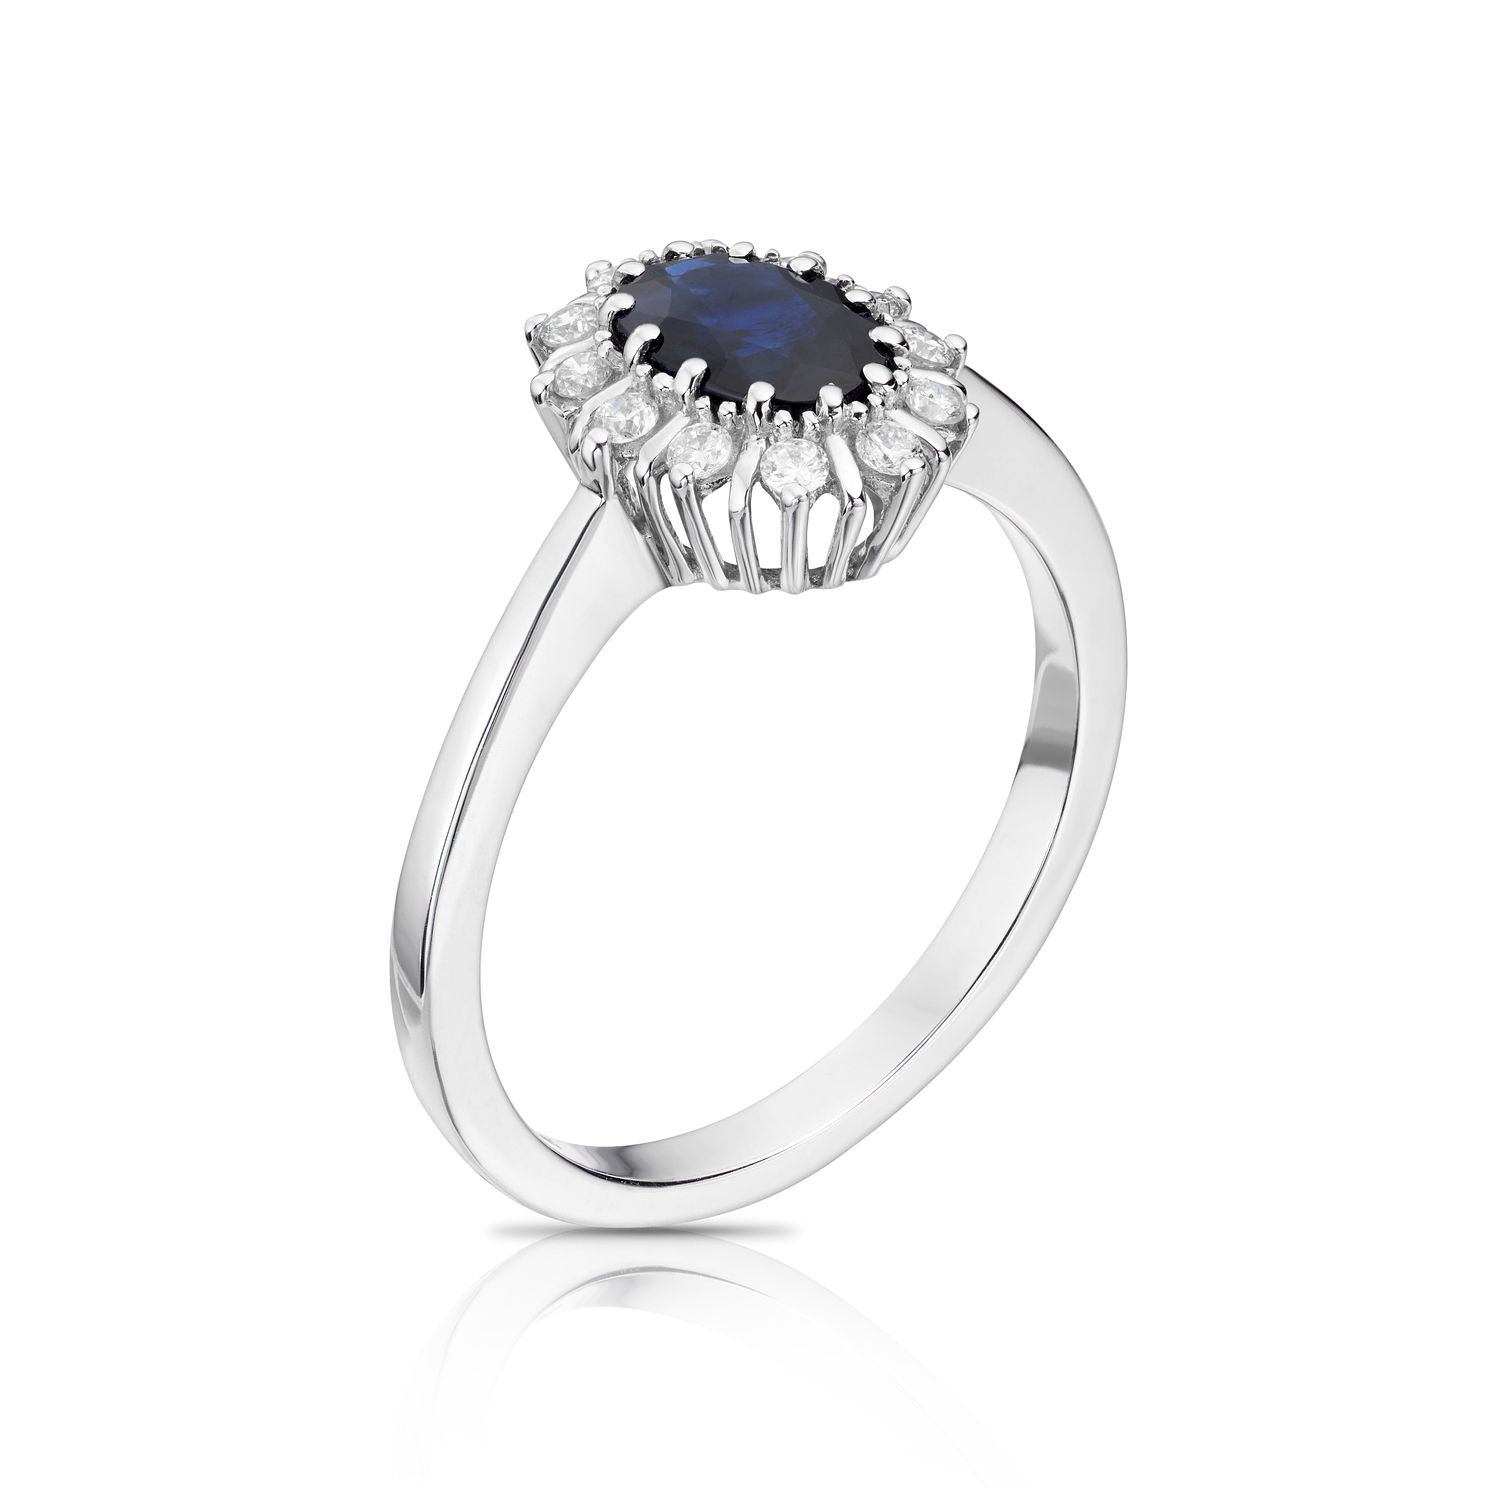 ring wedding kentucky blue cost size tiffany affordable created rings of engagement uk lab popular diamond sapphire large glasgow and